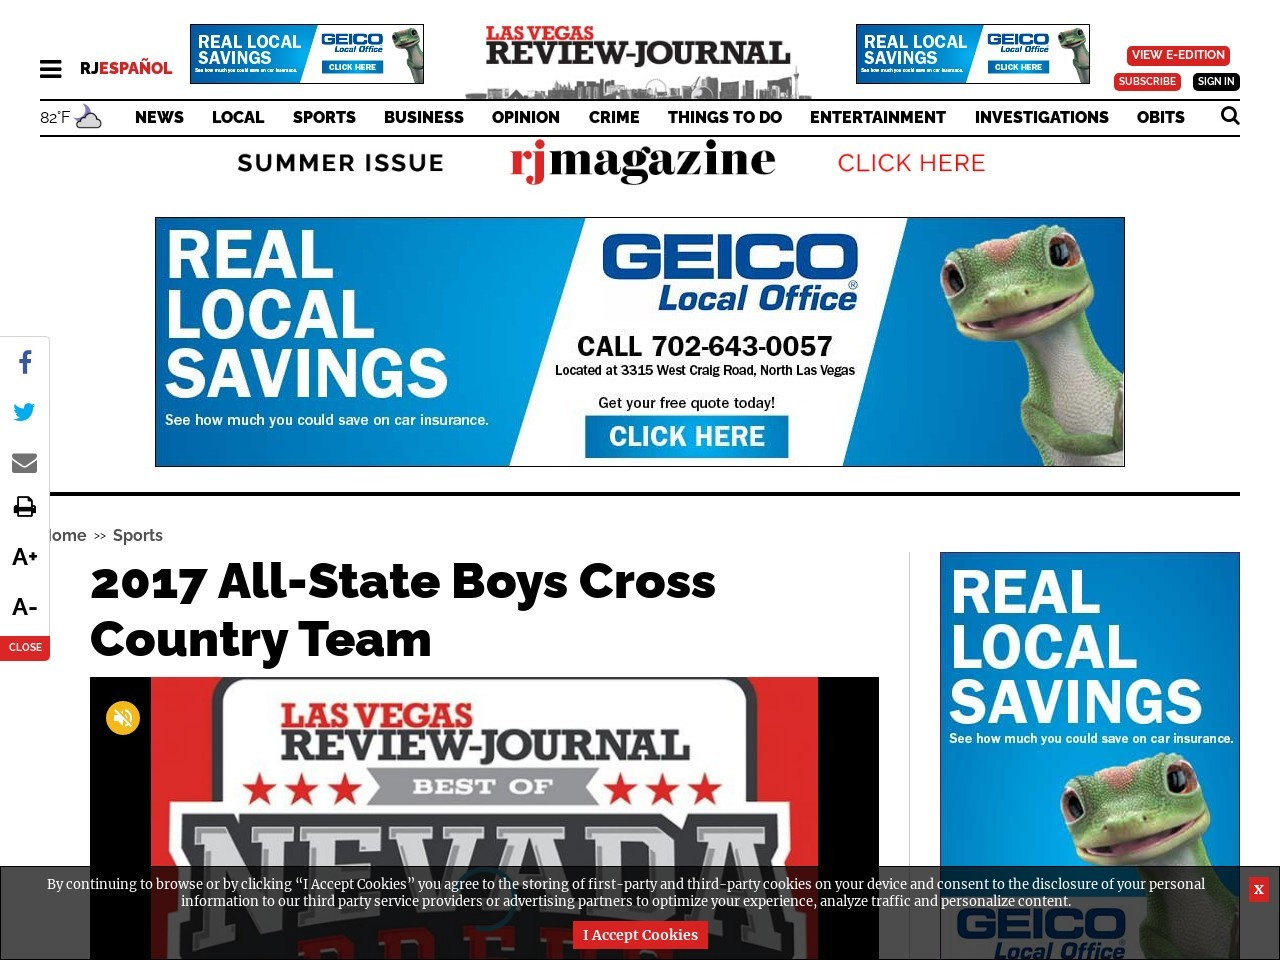 2017 All-State Boys Cross Country Team